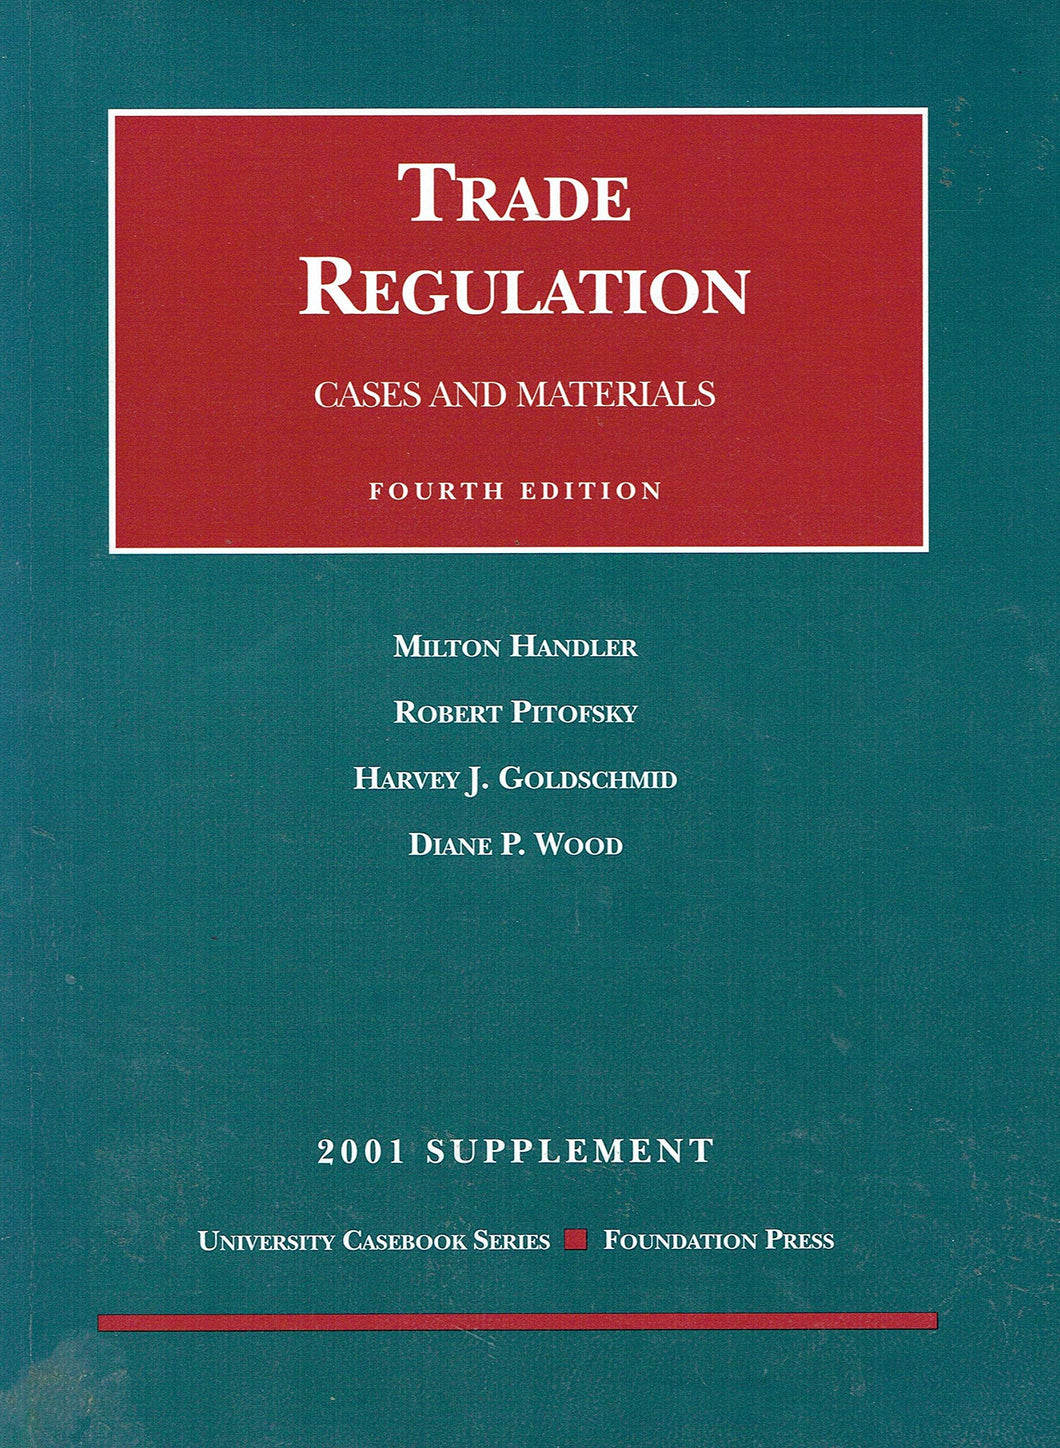 Trade Regulation: Cases and Materials - Fourth Edition, 2001 Supplement - University Casebook Series